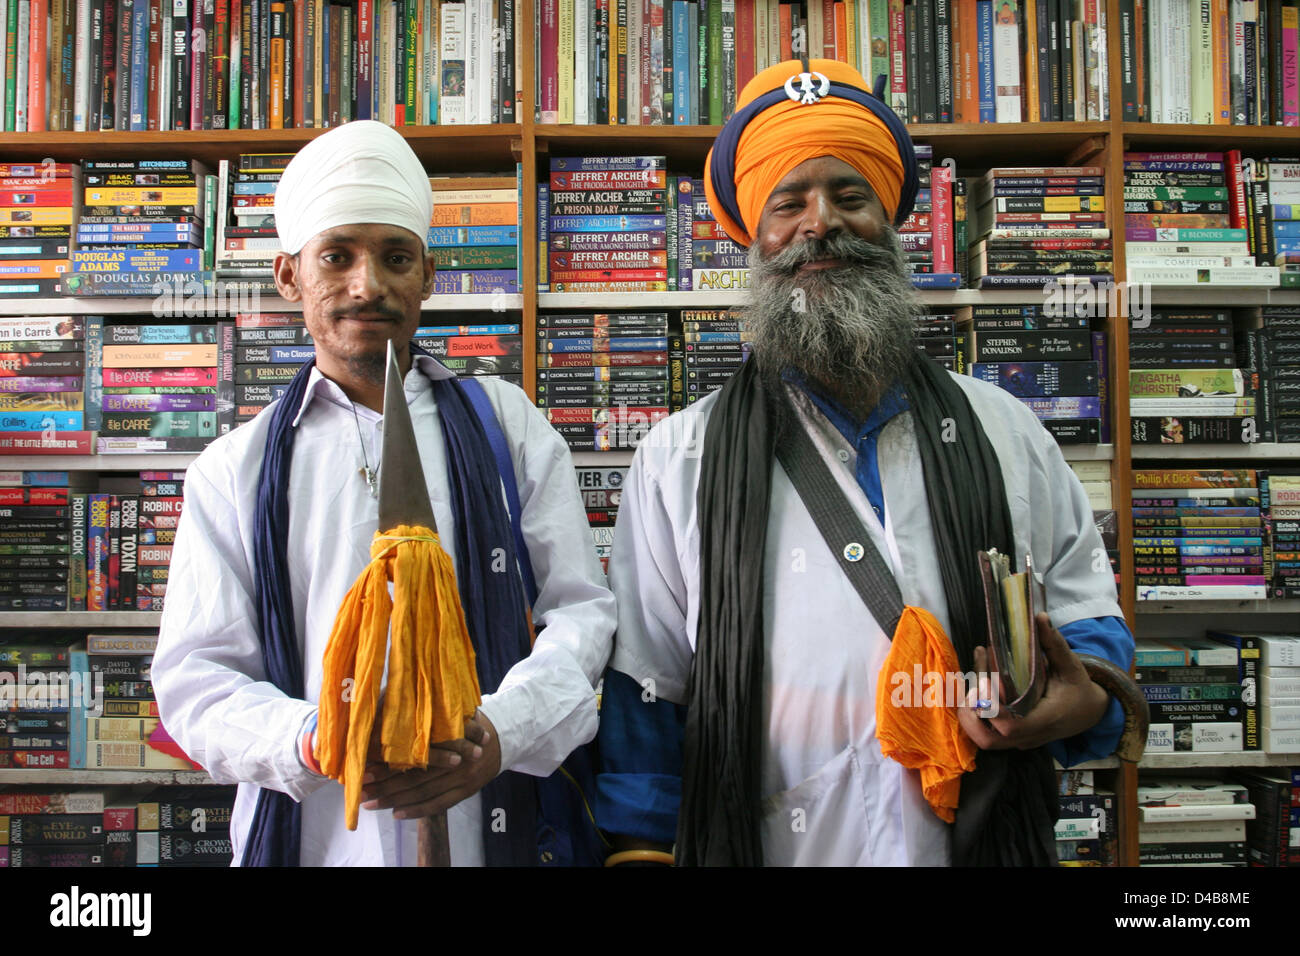 a sikh guru and his assistant collect alms in a book shop in new stock photo royalty free image. Black Bedroom Furniture Sets. Home Design Ideas